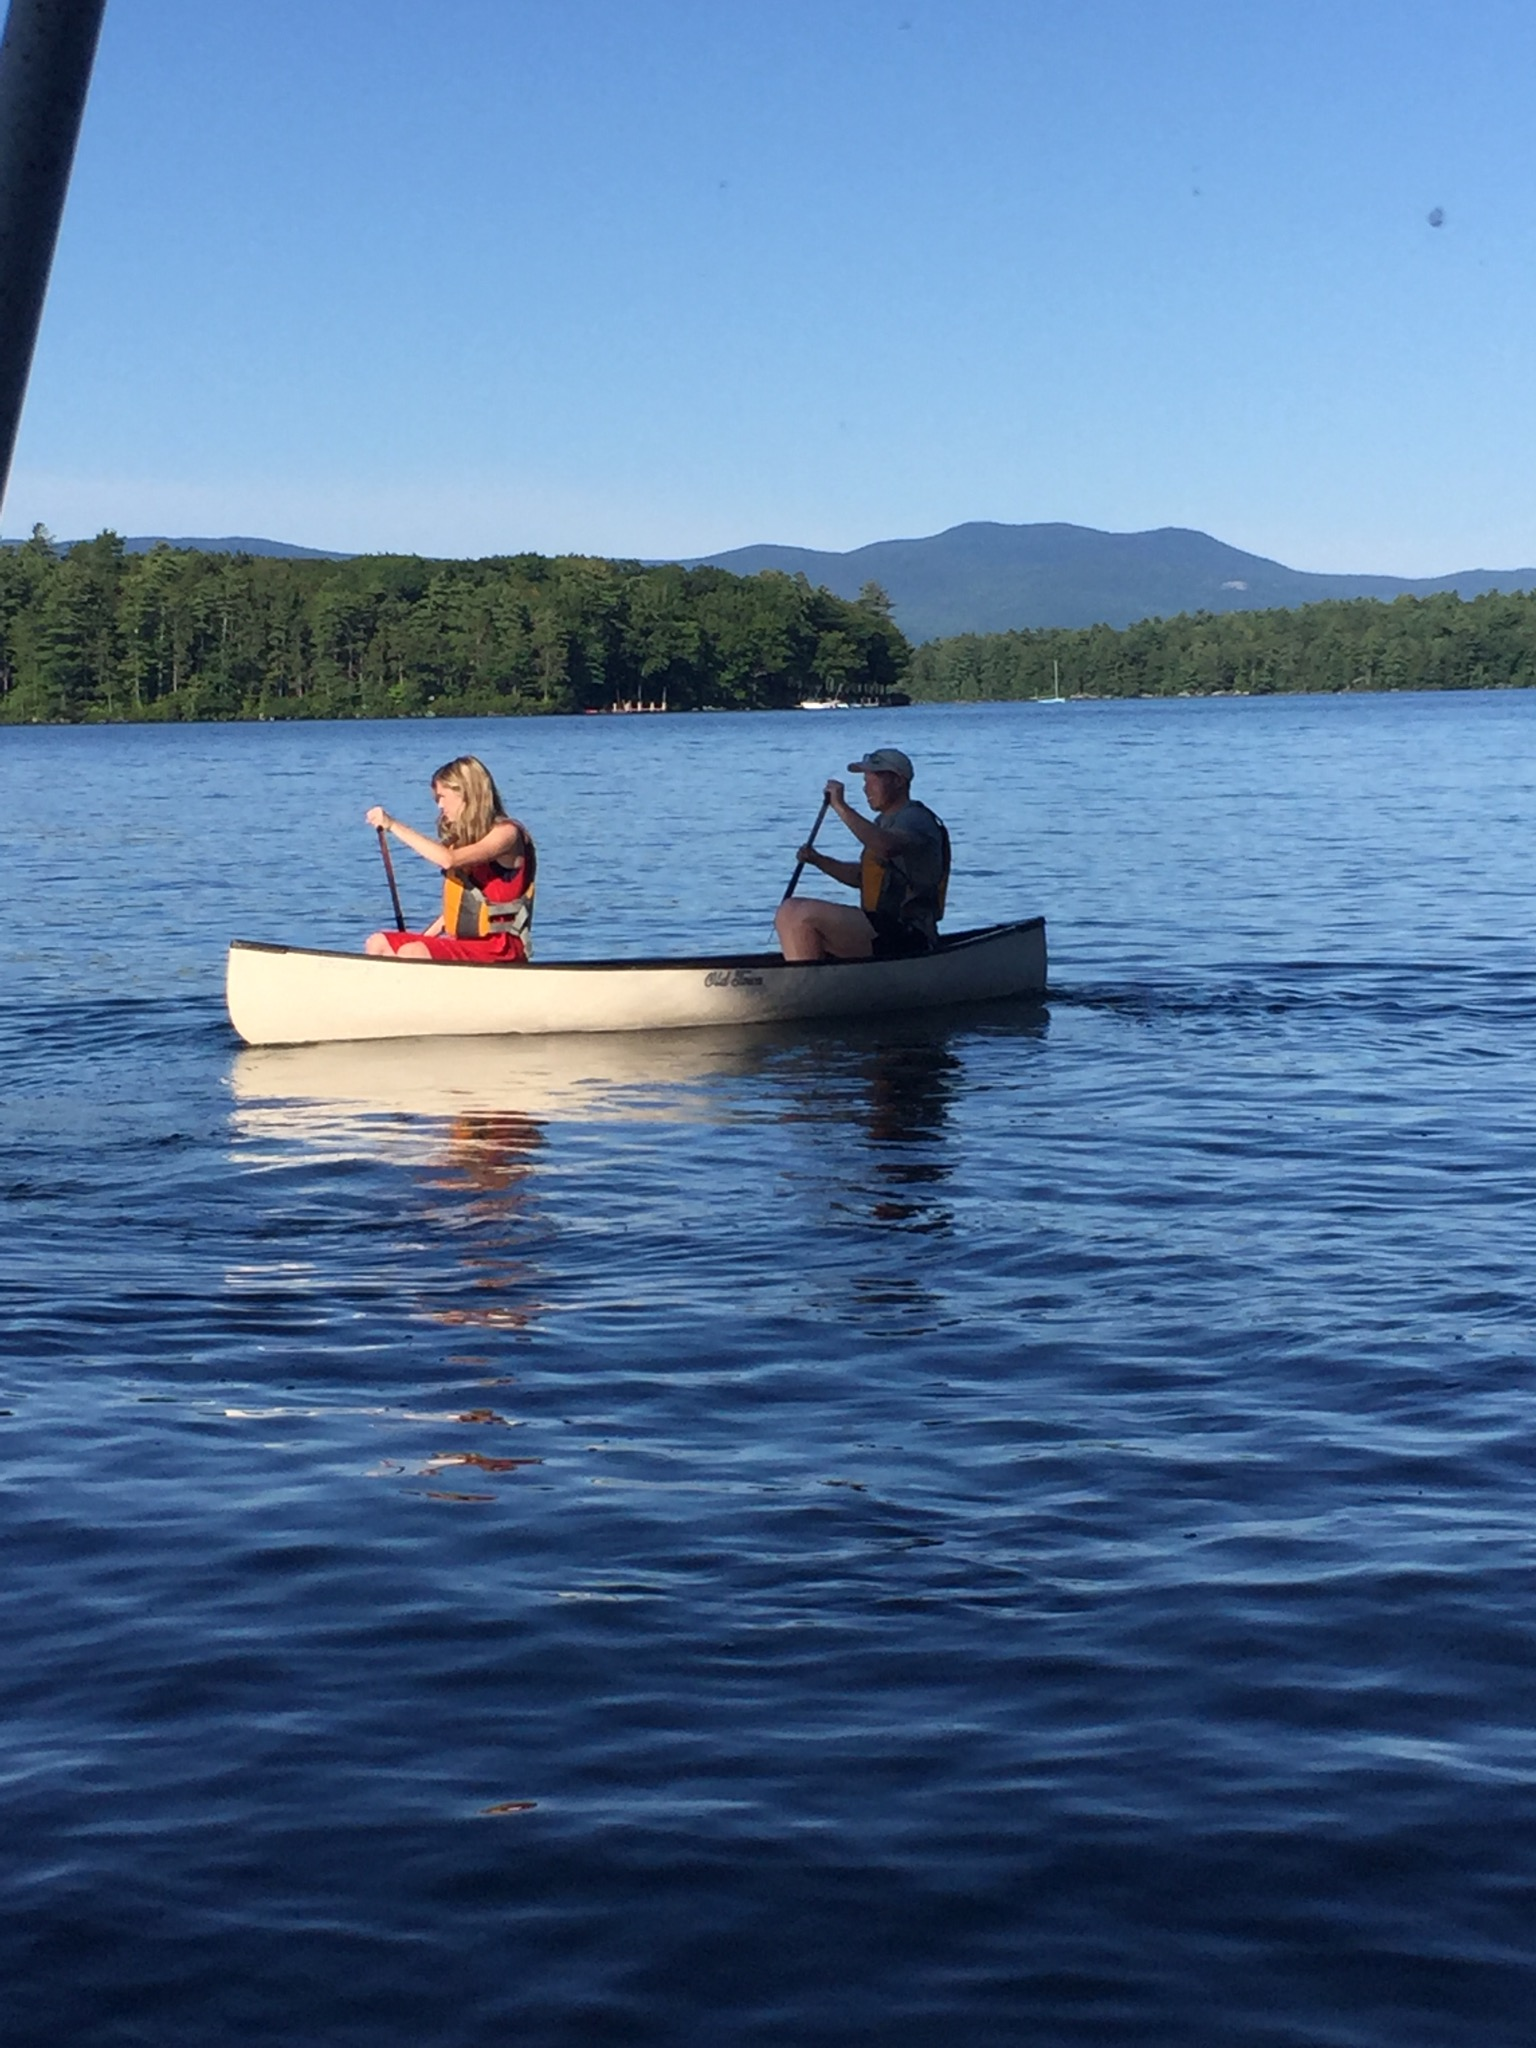 canoeing by 144 Veasey Shore Road's Winnipesaukee Shoreline in a Winni Lifestyle Video.